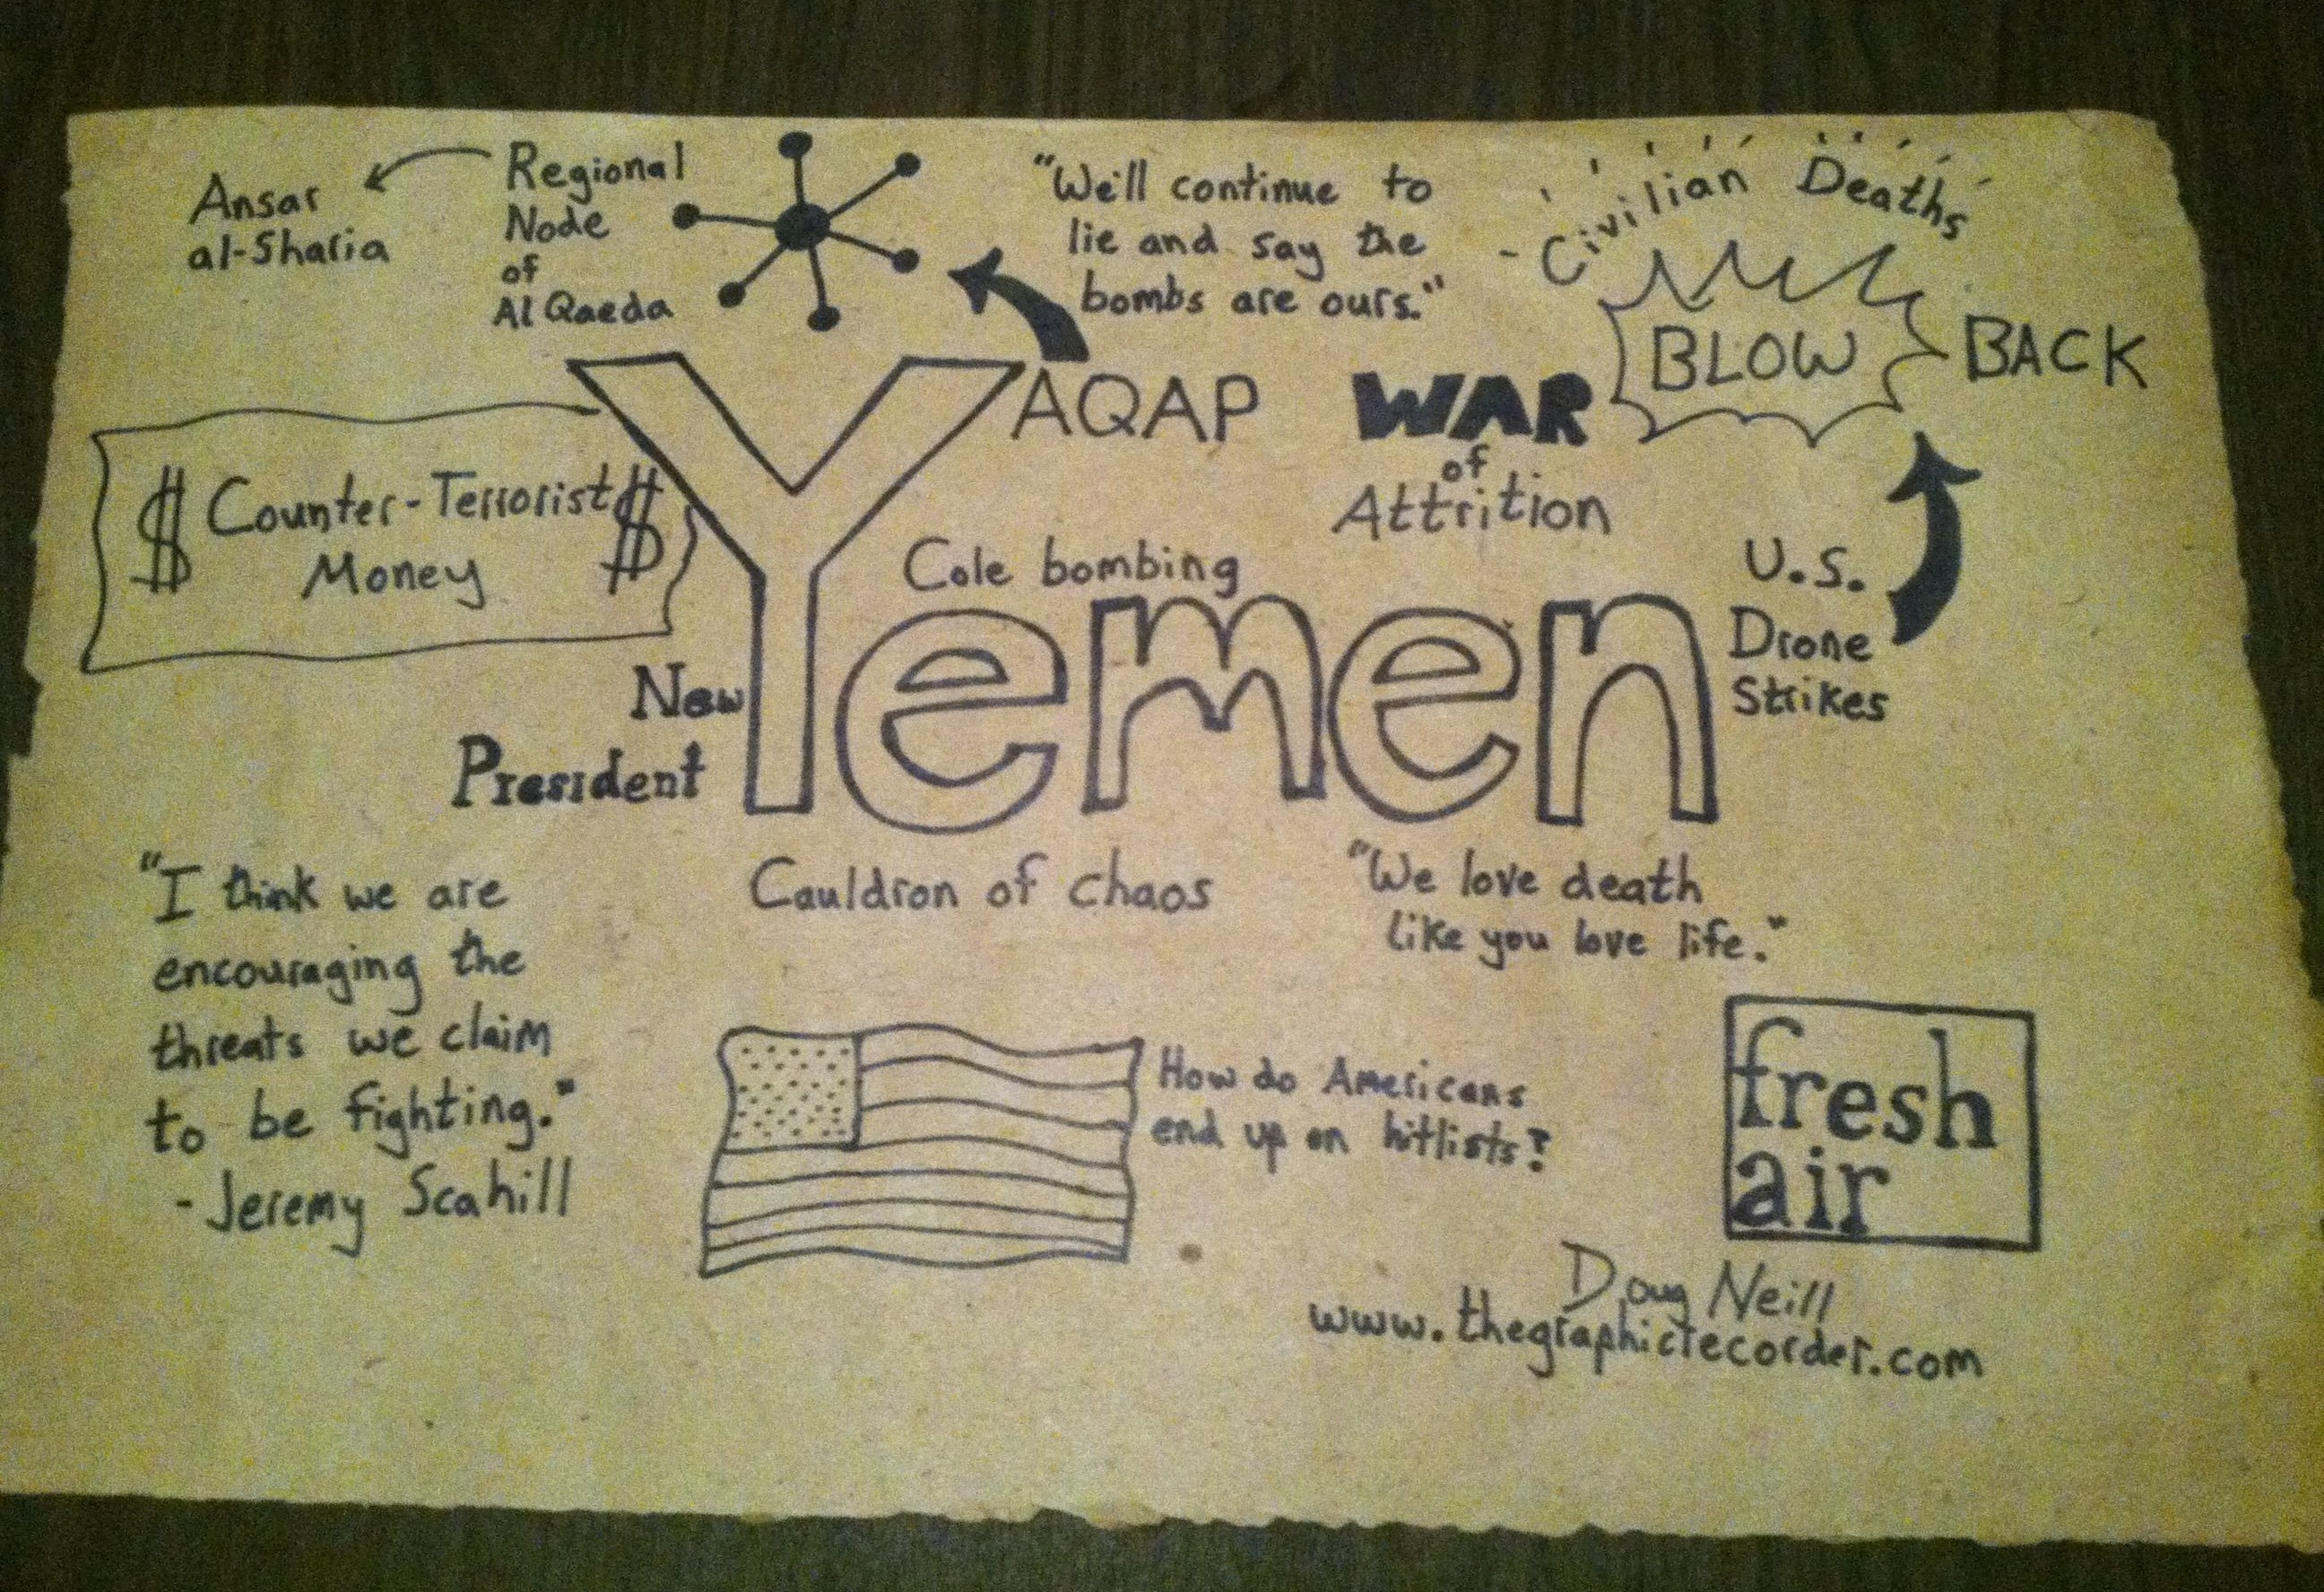 The Graphic Recorder - Doug Neill - NPR - Fresh Air - Yemen and the War on Terror - A Conversation Between Terry Gross and Jeremy Scahill